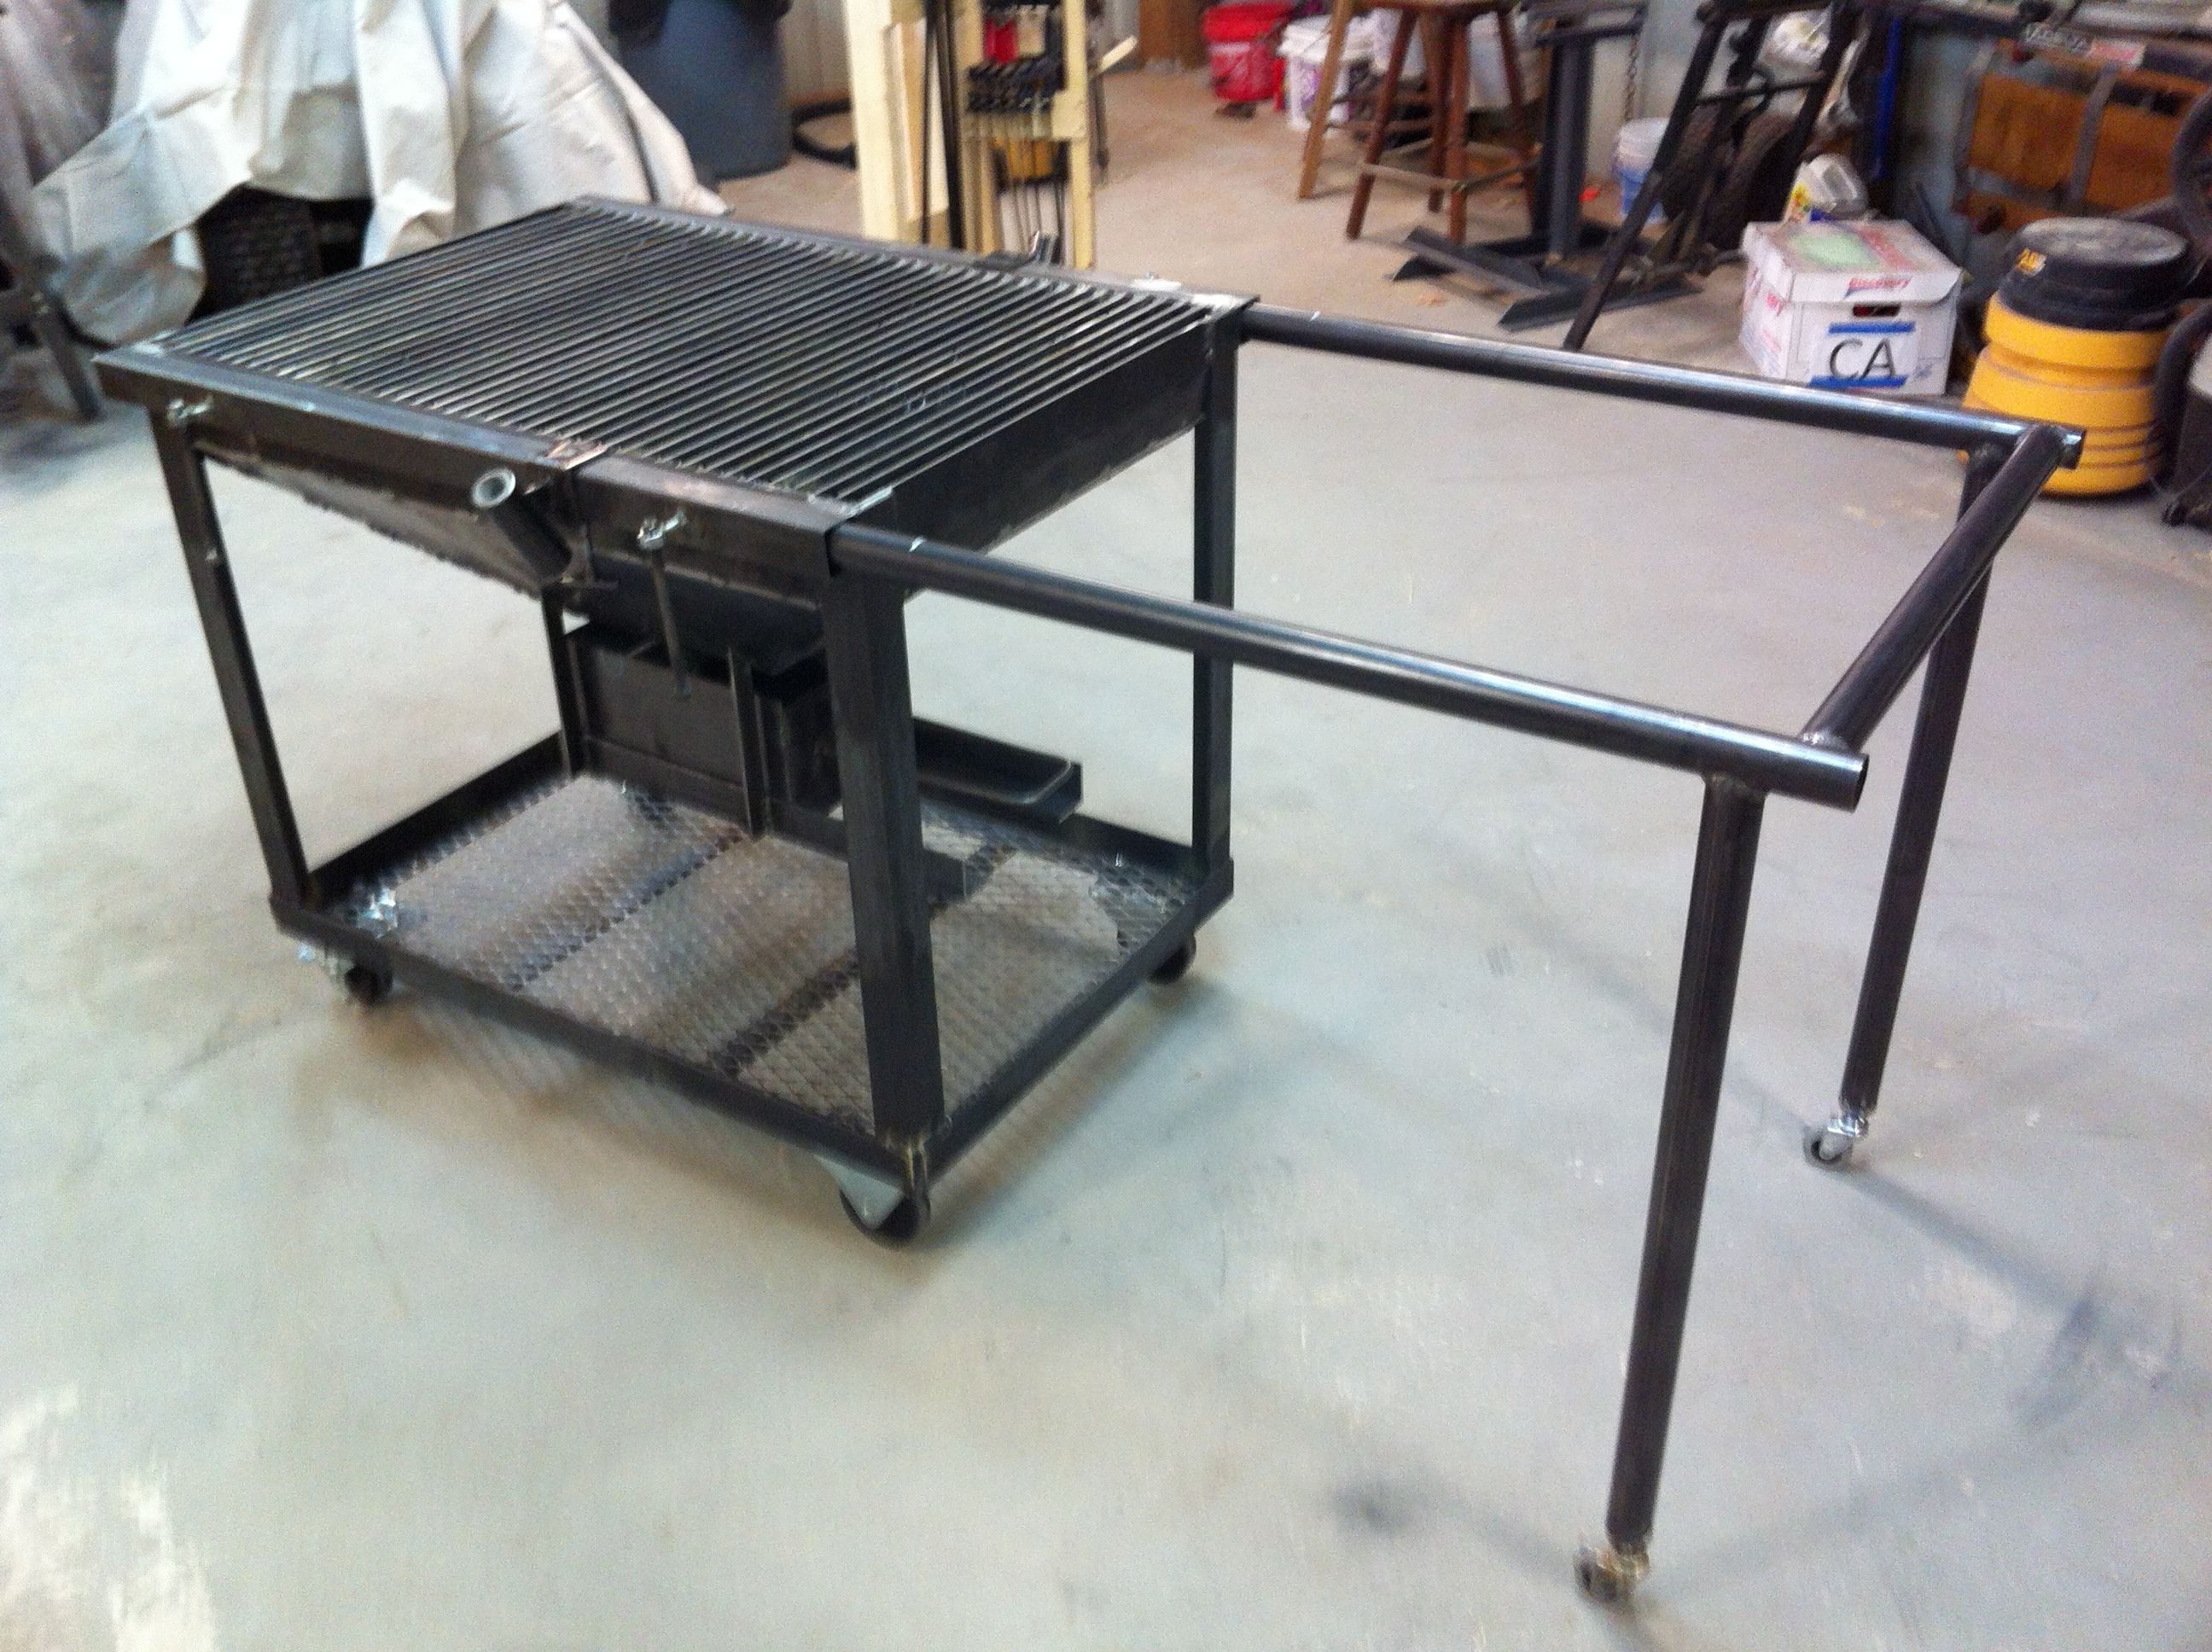 cutting plasma cutter table homemade